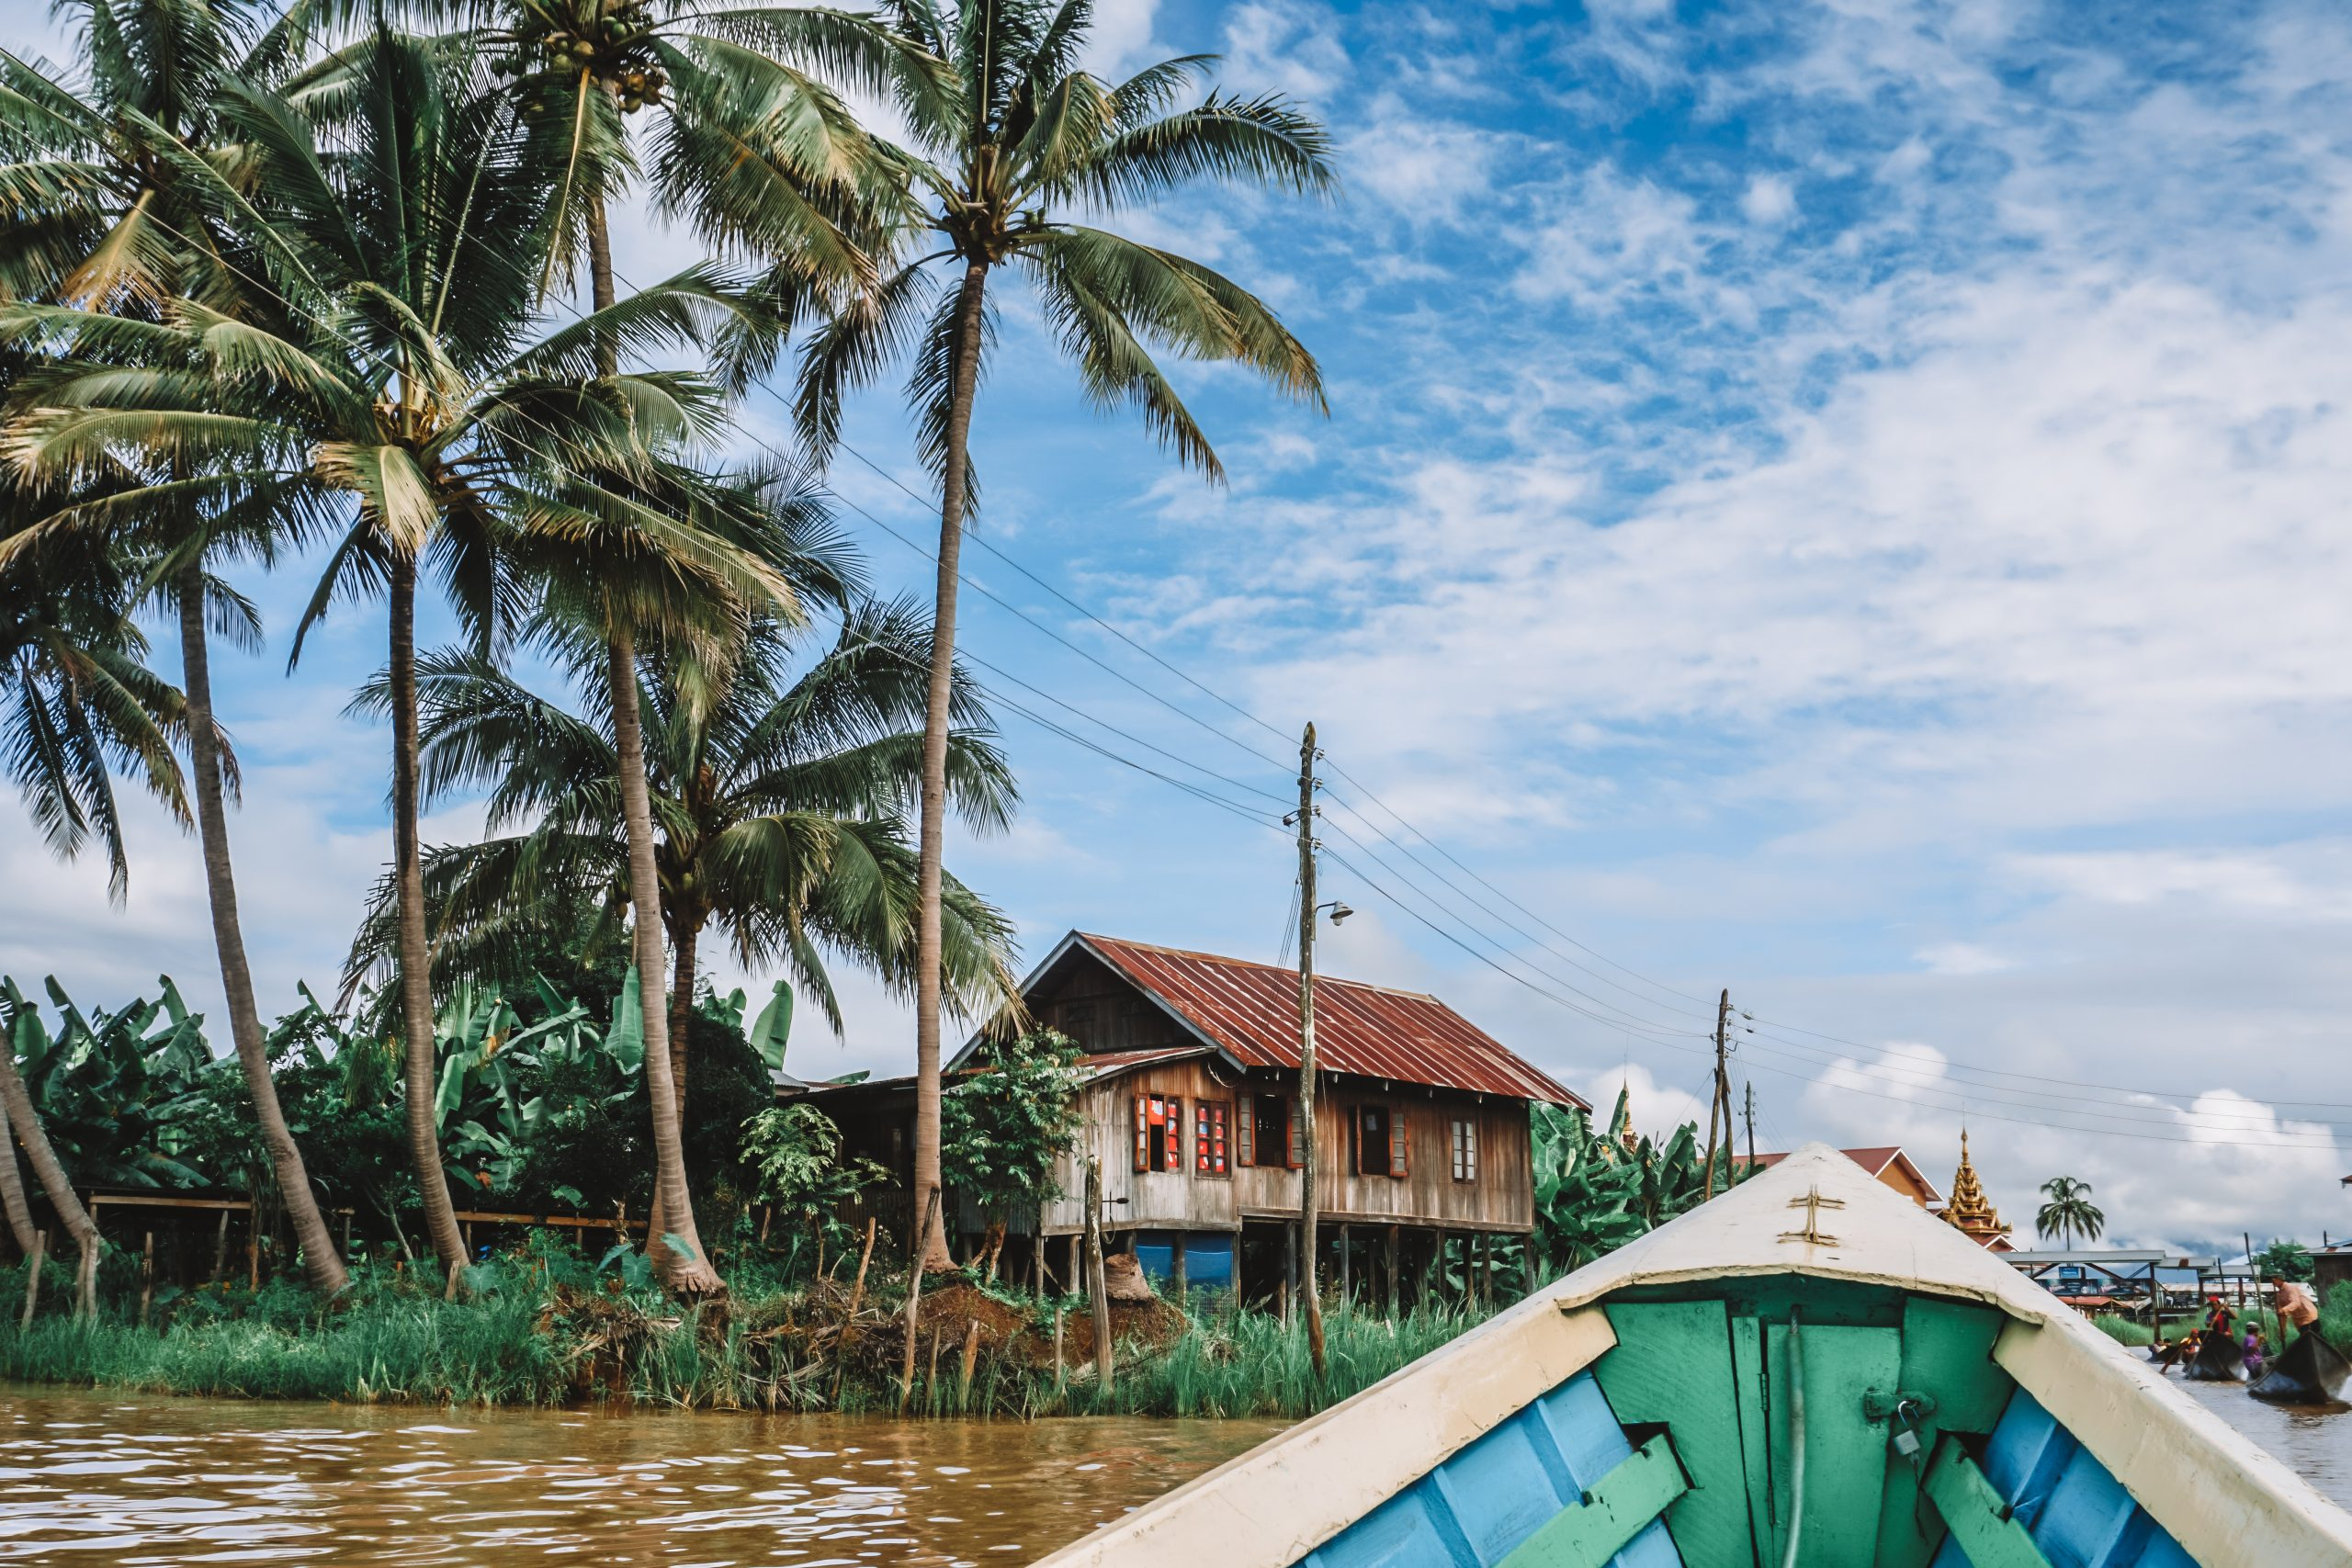 one of the best things to do in inle lake myanmar - a boat tour